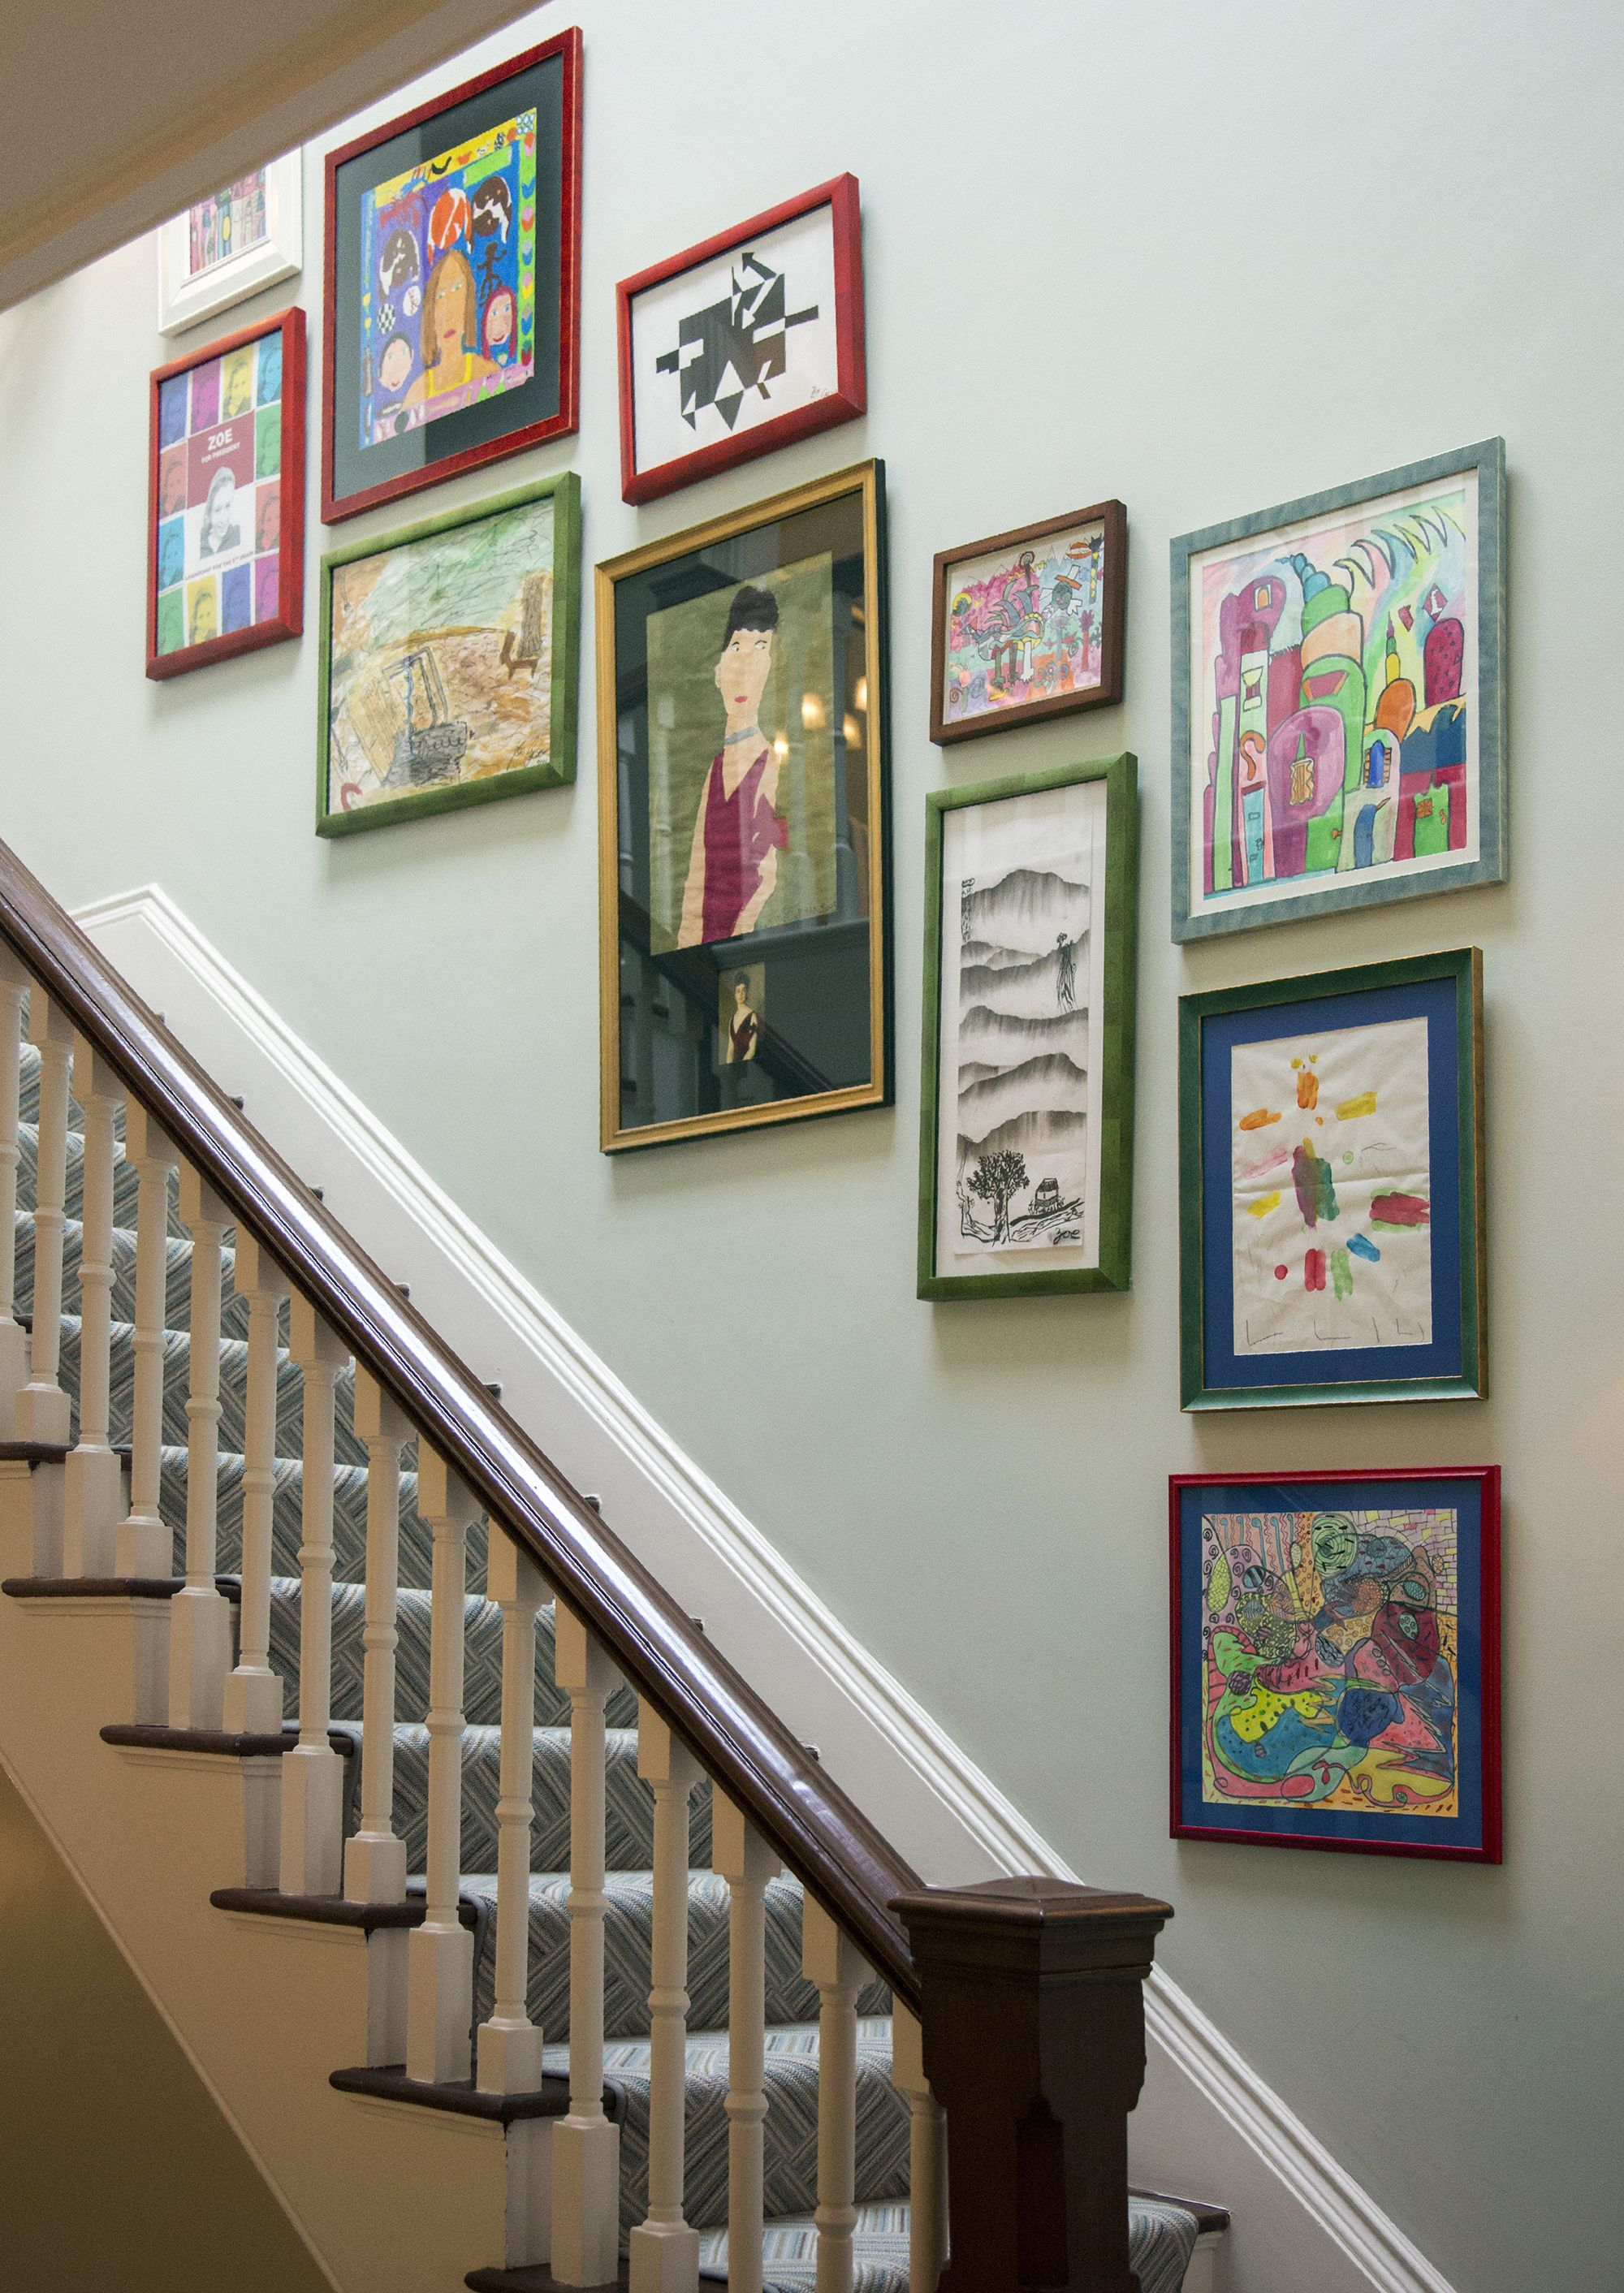 27 Stylish Staircase Decorating Ideas – How To Decorate In Landing Art Wall Decor (View 9 of 30)